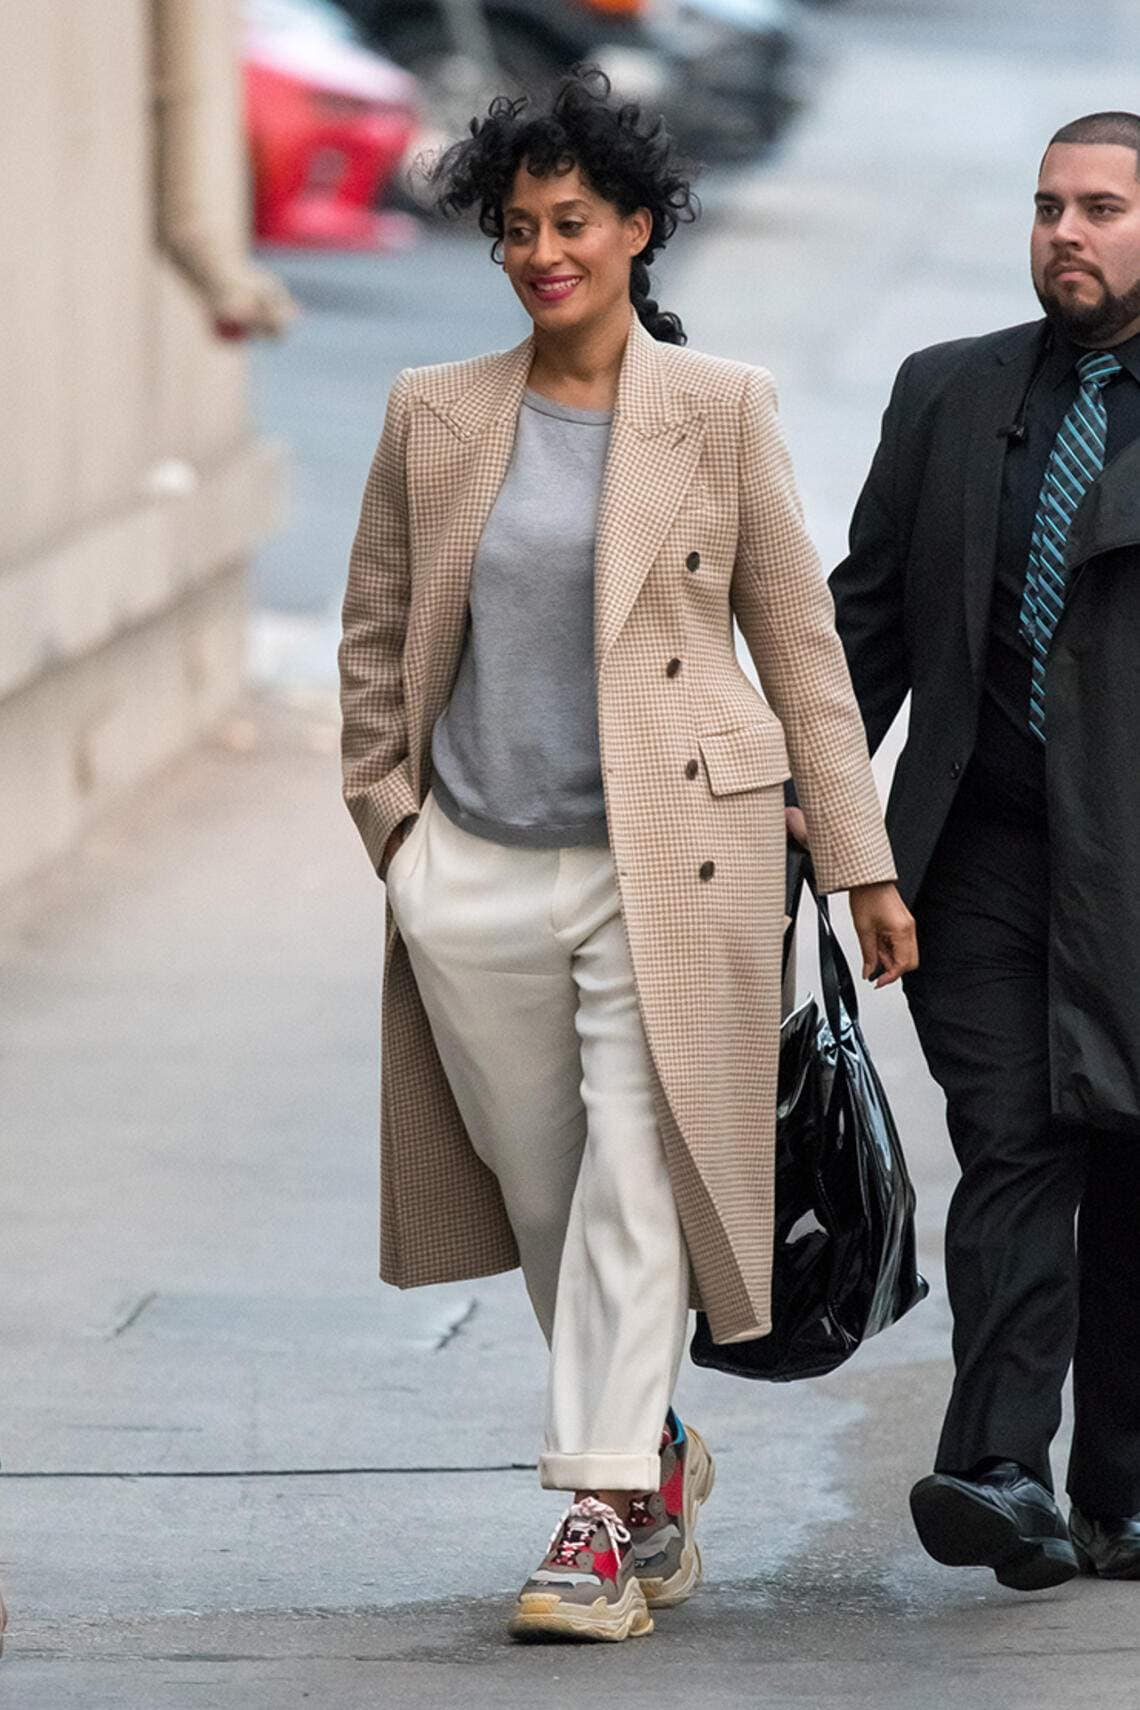 Tracee Ellis Ross, Schauspielerin - Style of the Day |Style